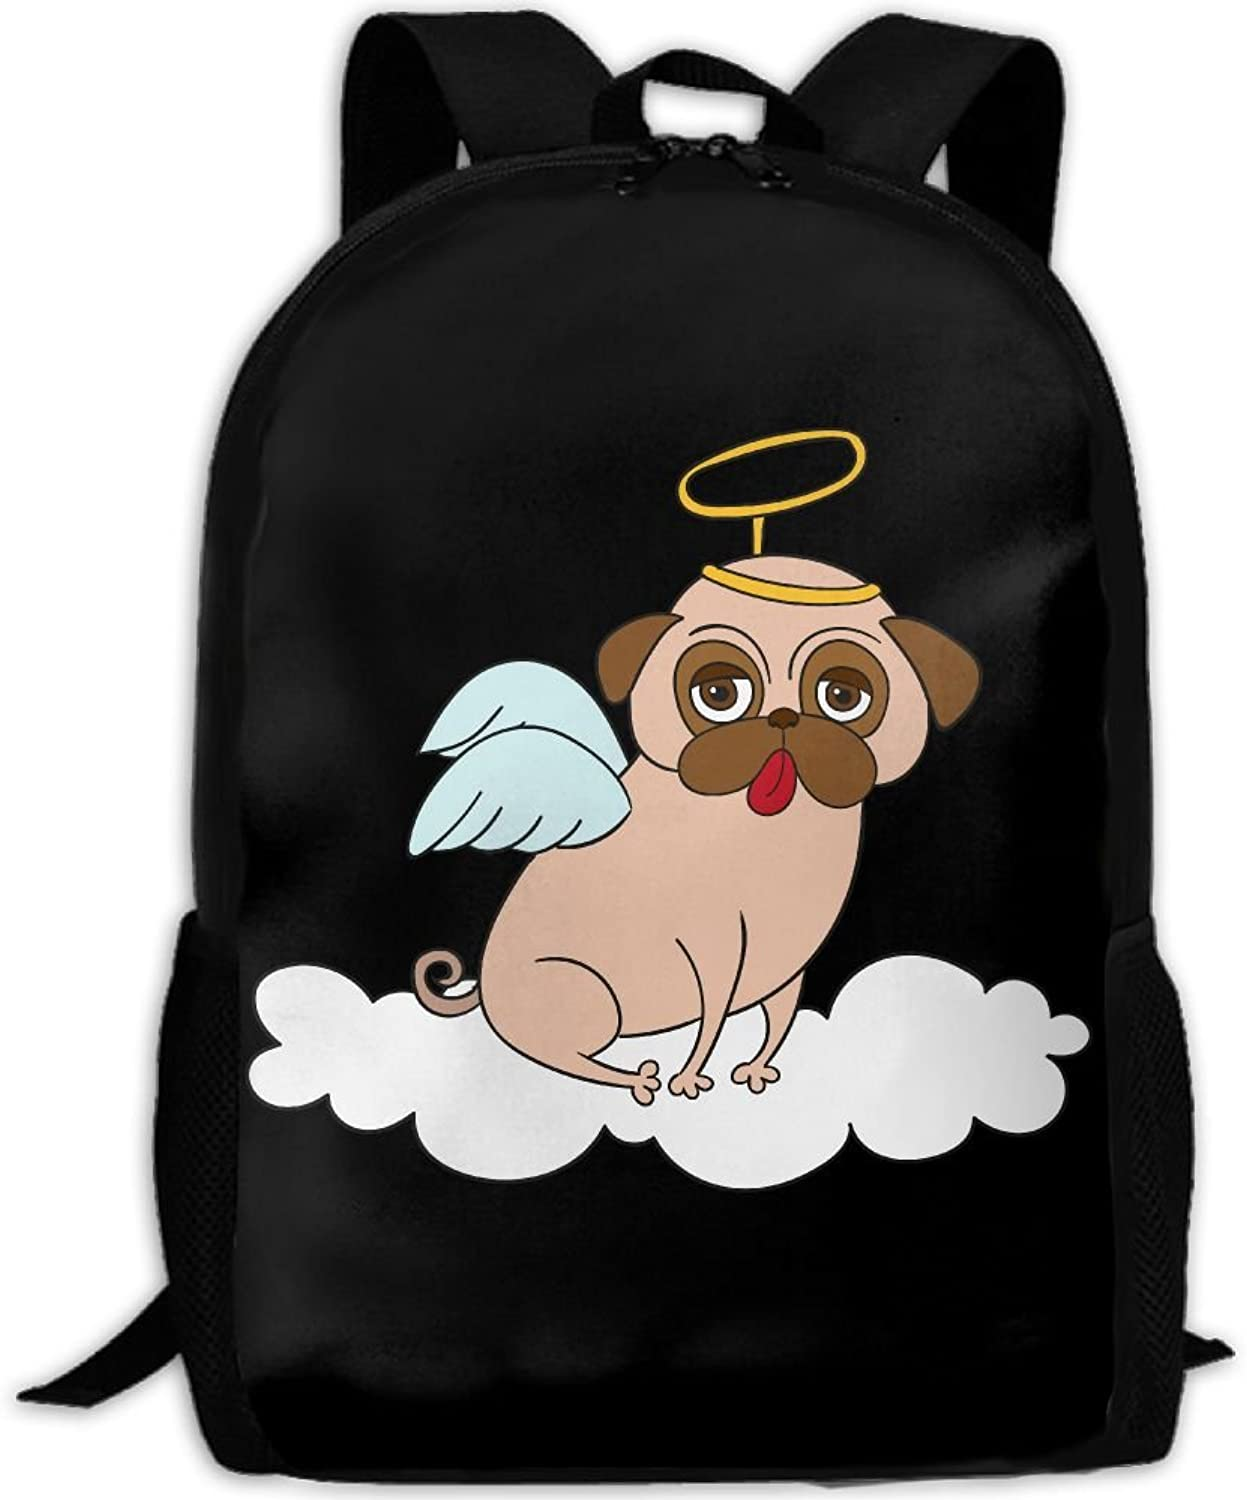 955cbeb526b2 Adult Backpack Pug College Daypack Oxford Bag Unisex Travel Sports ...